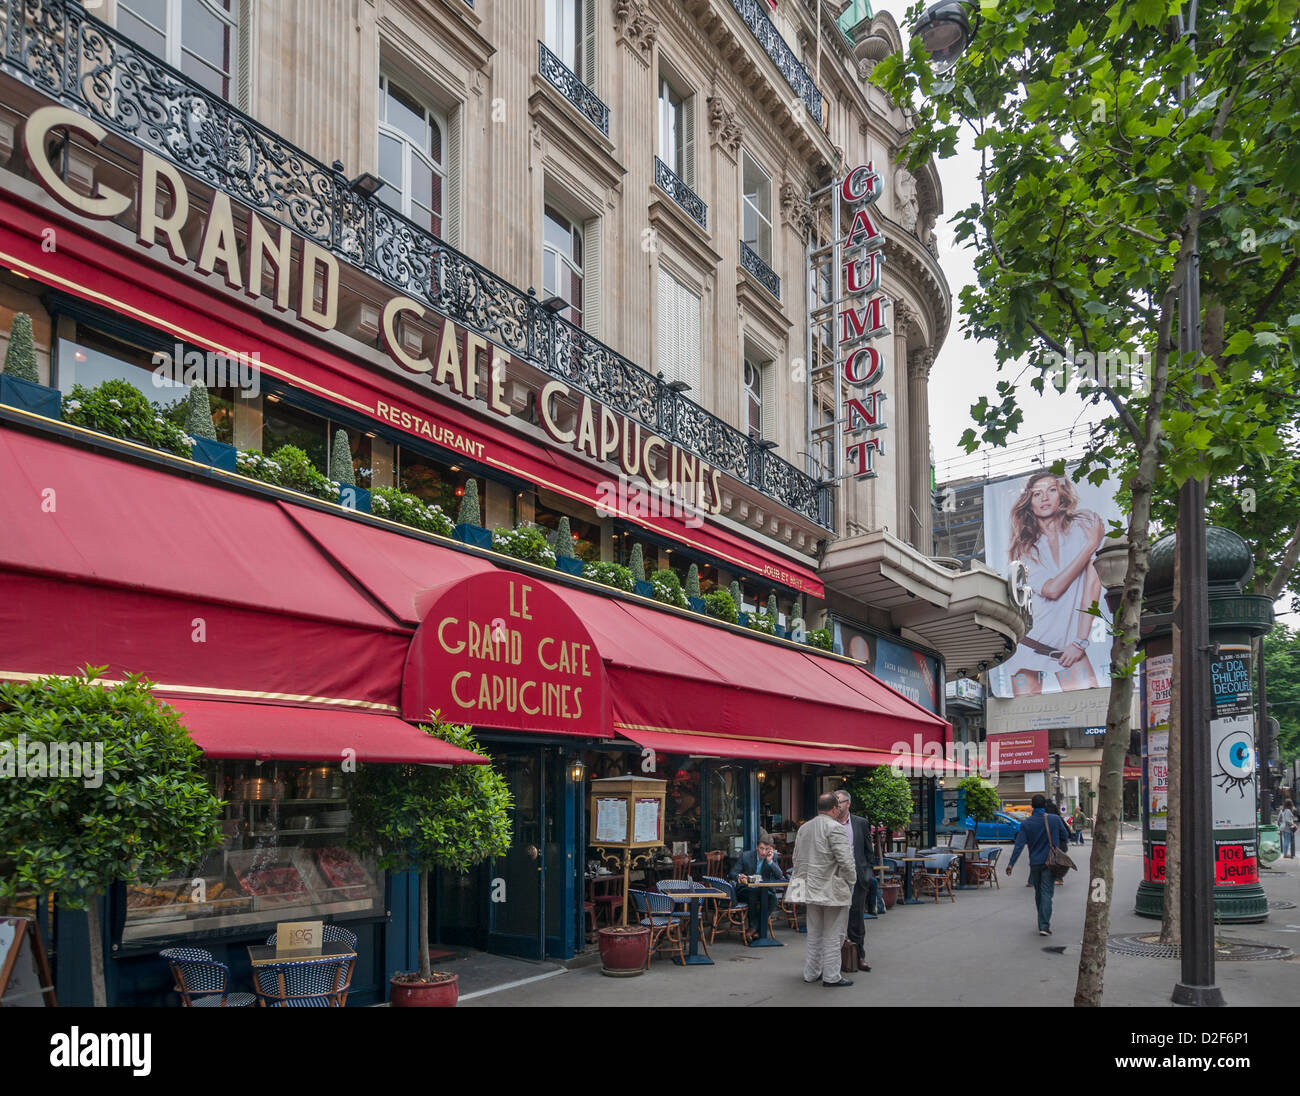 Café Des Capucines Paris Le Grand Cafe Capucines In Paris Frankreich Stockfoto Bild